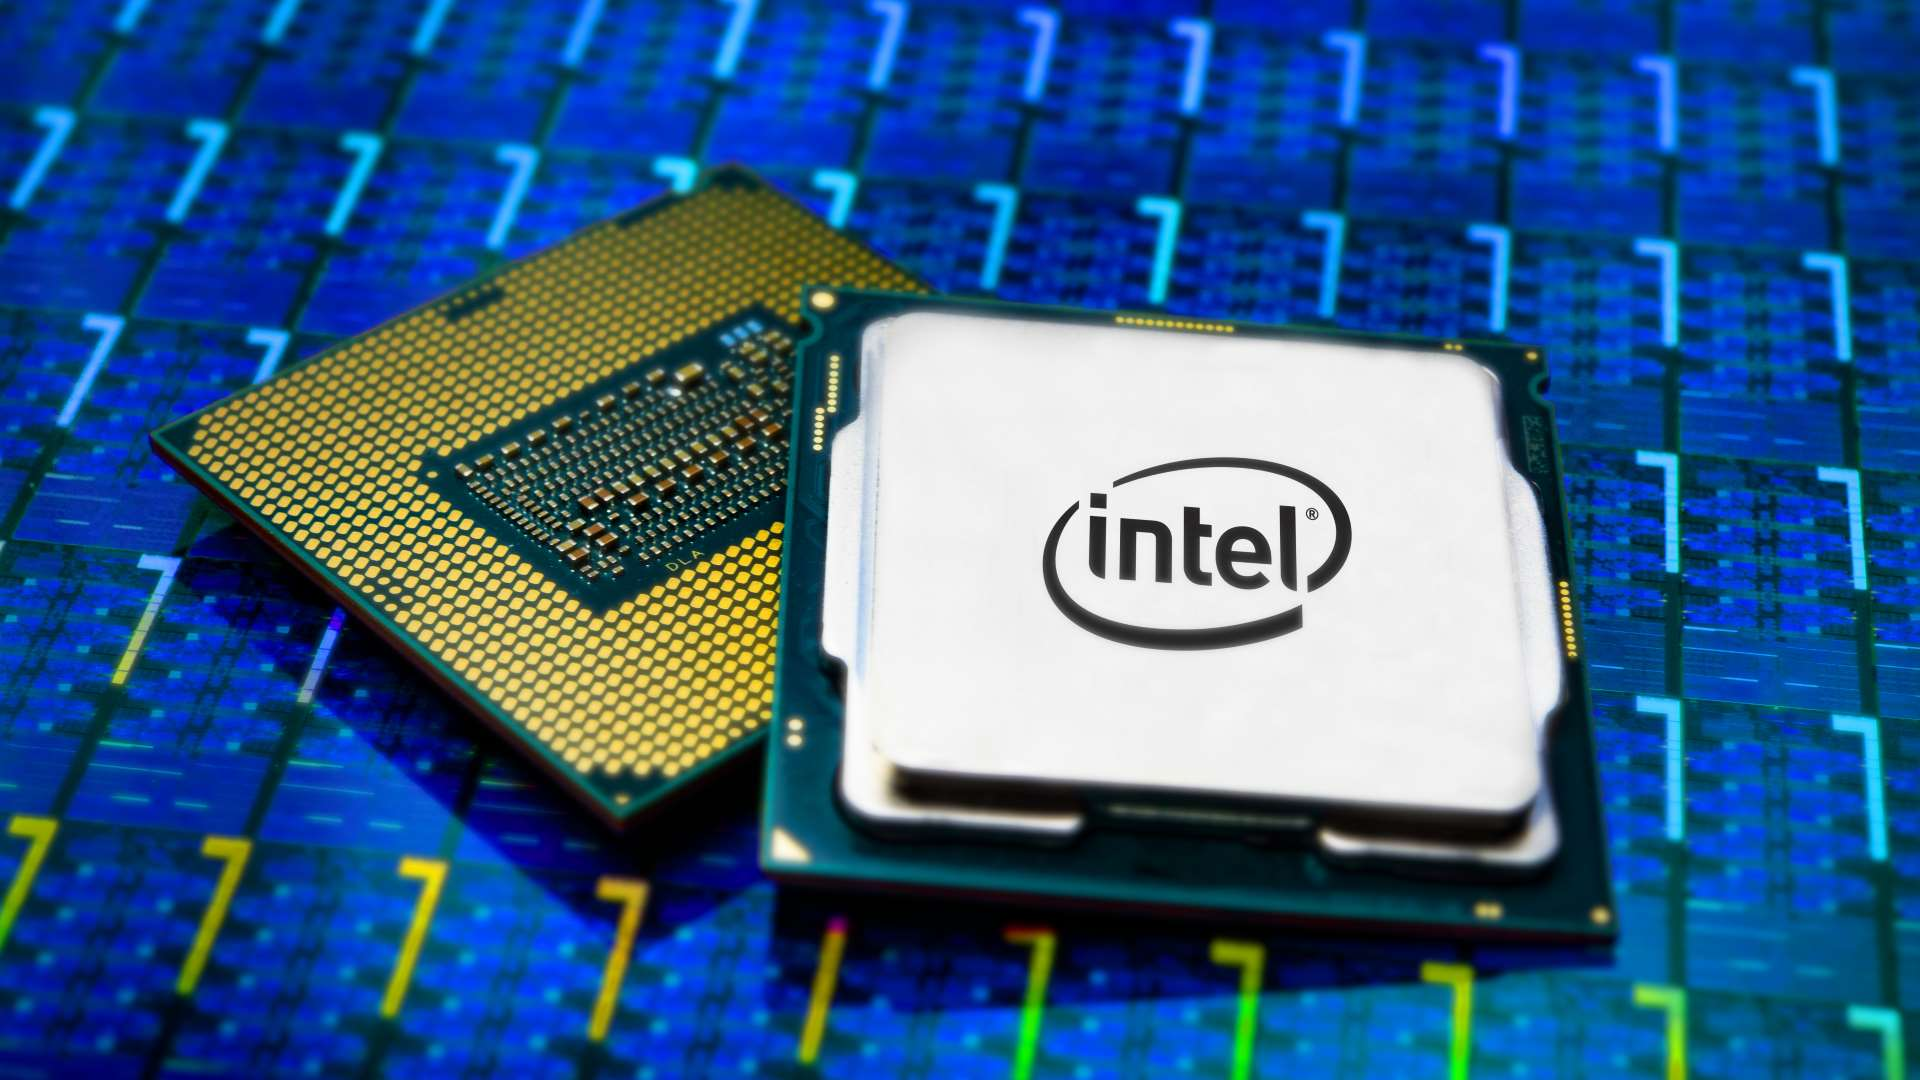 Intel 14nm Rocket Lake CPUs missing Core i9, maxing out at 8 cores